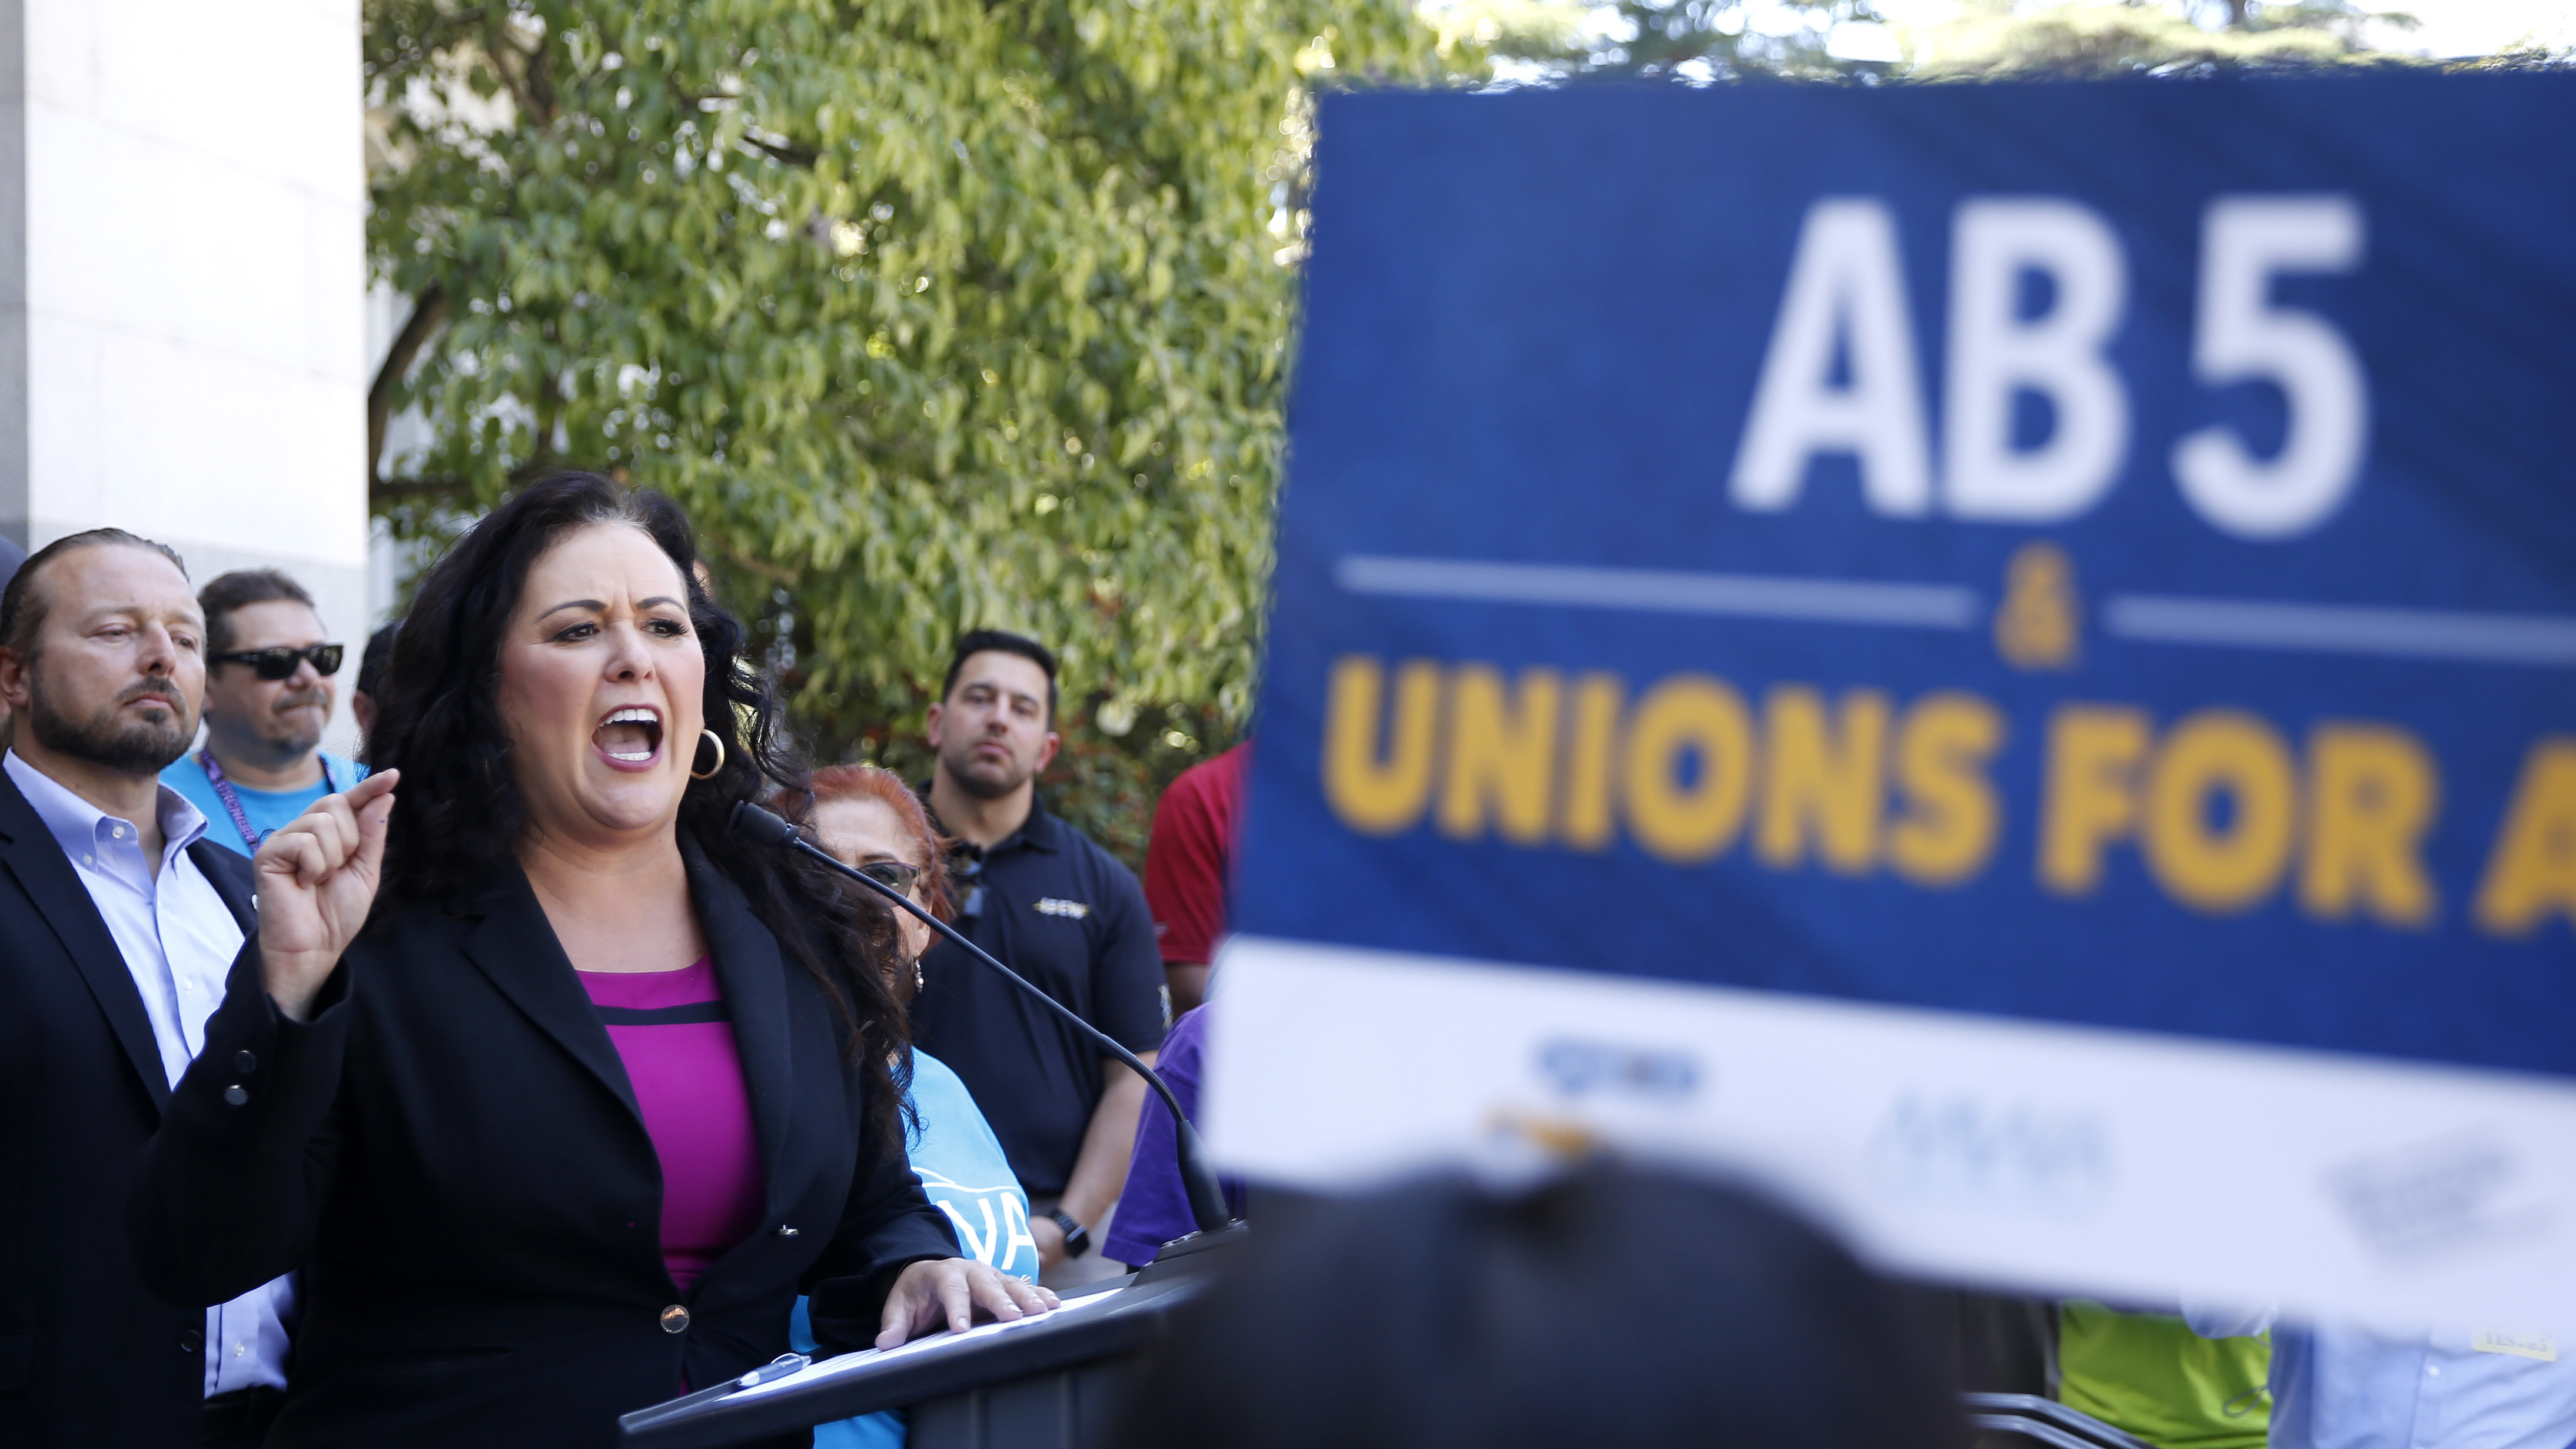 Democratic Assemblywoman Lorena Gonzalez speaks at a July rally for independent contractors in Sacramento, Calif. The measure that passed Tuesday in the state Senate requires companies such as Lyft and Uber to turn many contract workers into employees.